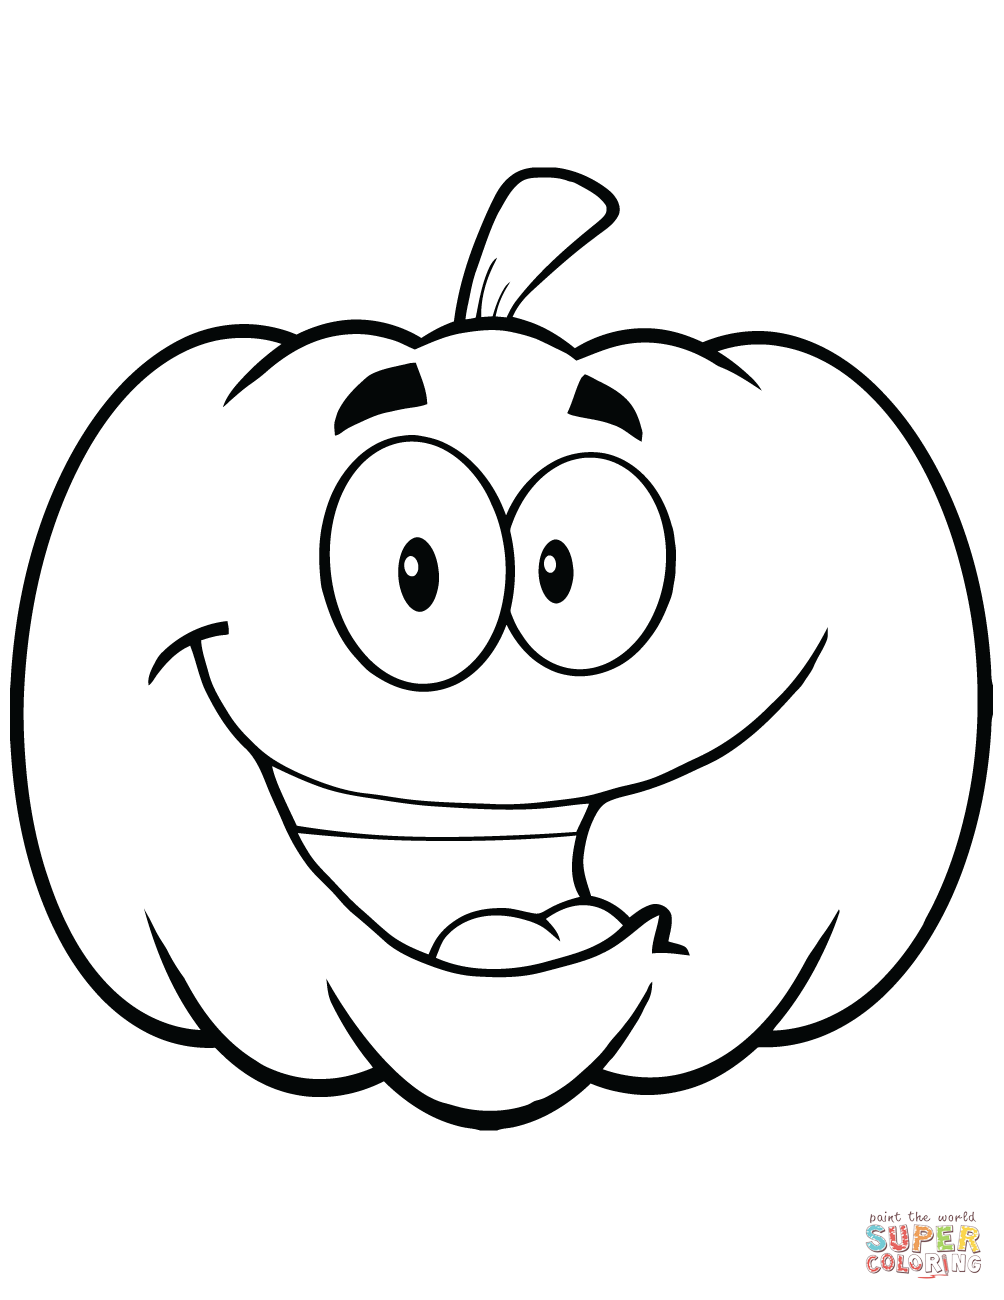 halloween pumpkin pictures to print and color scary halloween pumpkin coloring pages team colors color pumpkin and halloween pictures print to